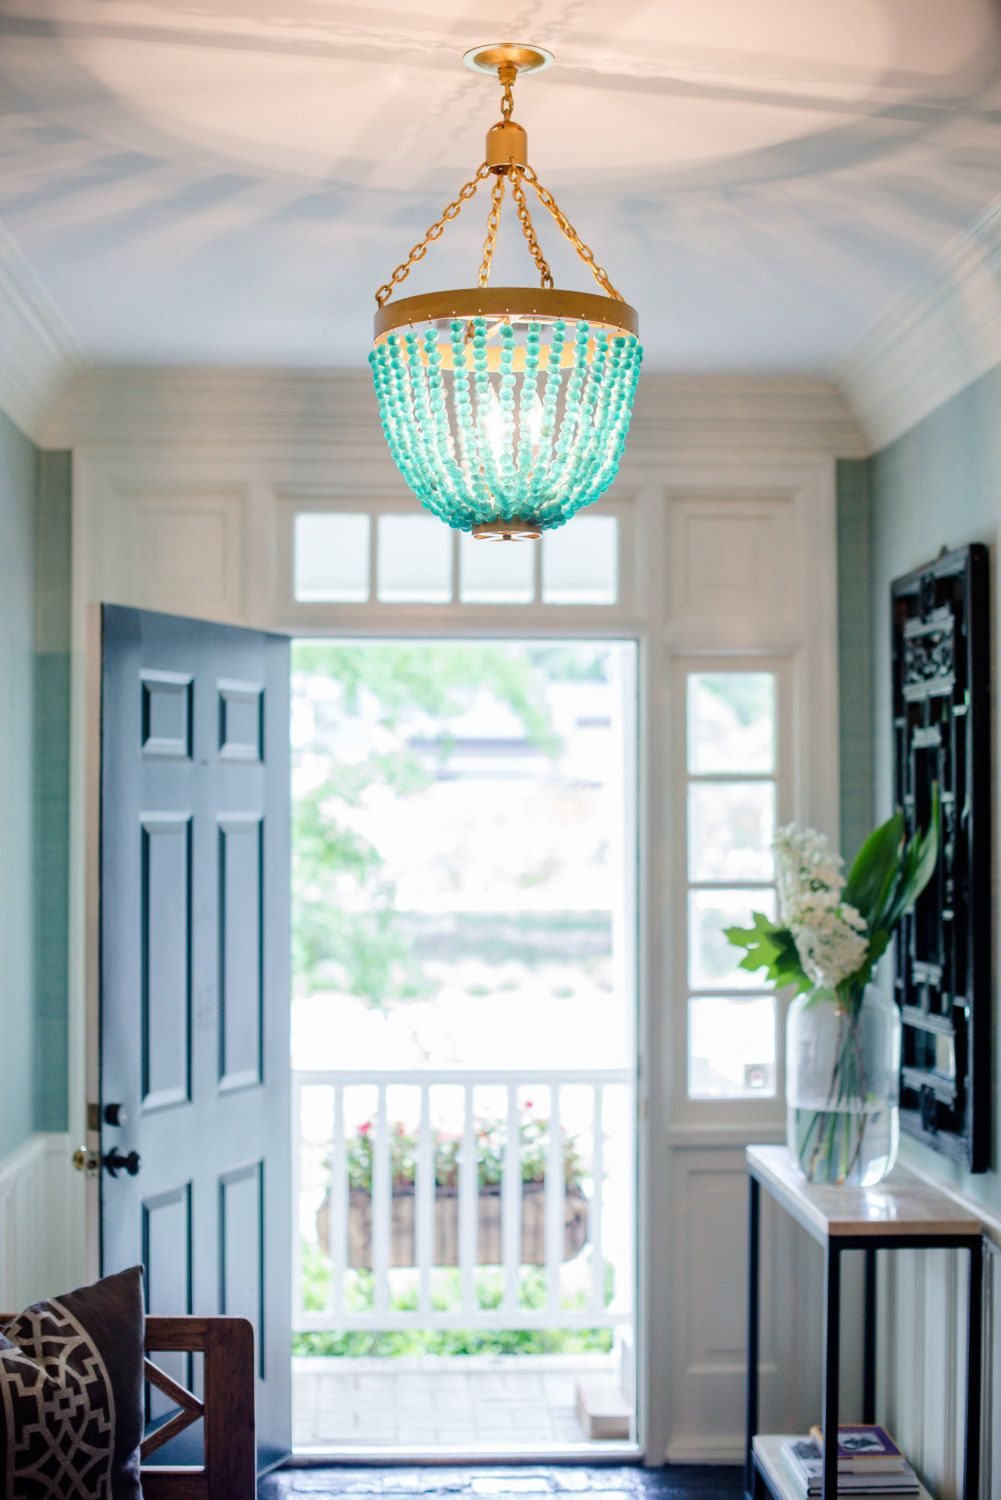 recycled glass turquoise handmade chandelier lighting love pinterest sch ne zuhause. Black Bedroom Furniture Sets. Home Design Ideas